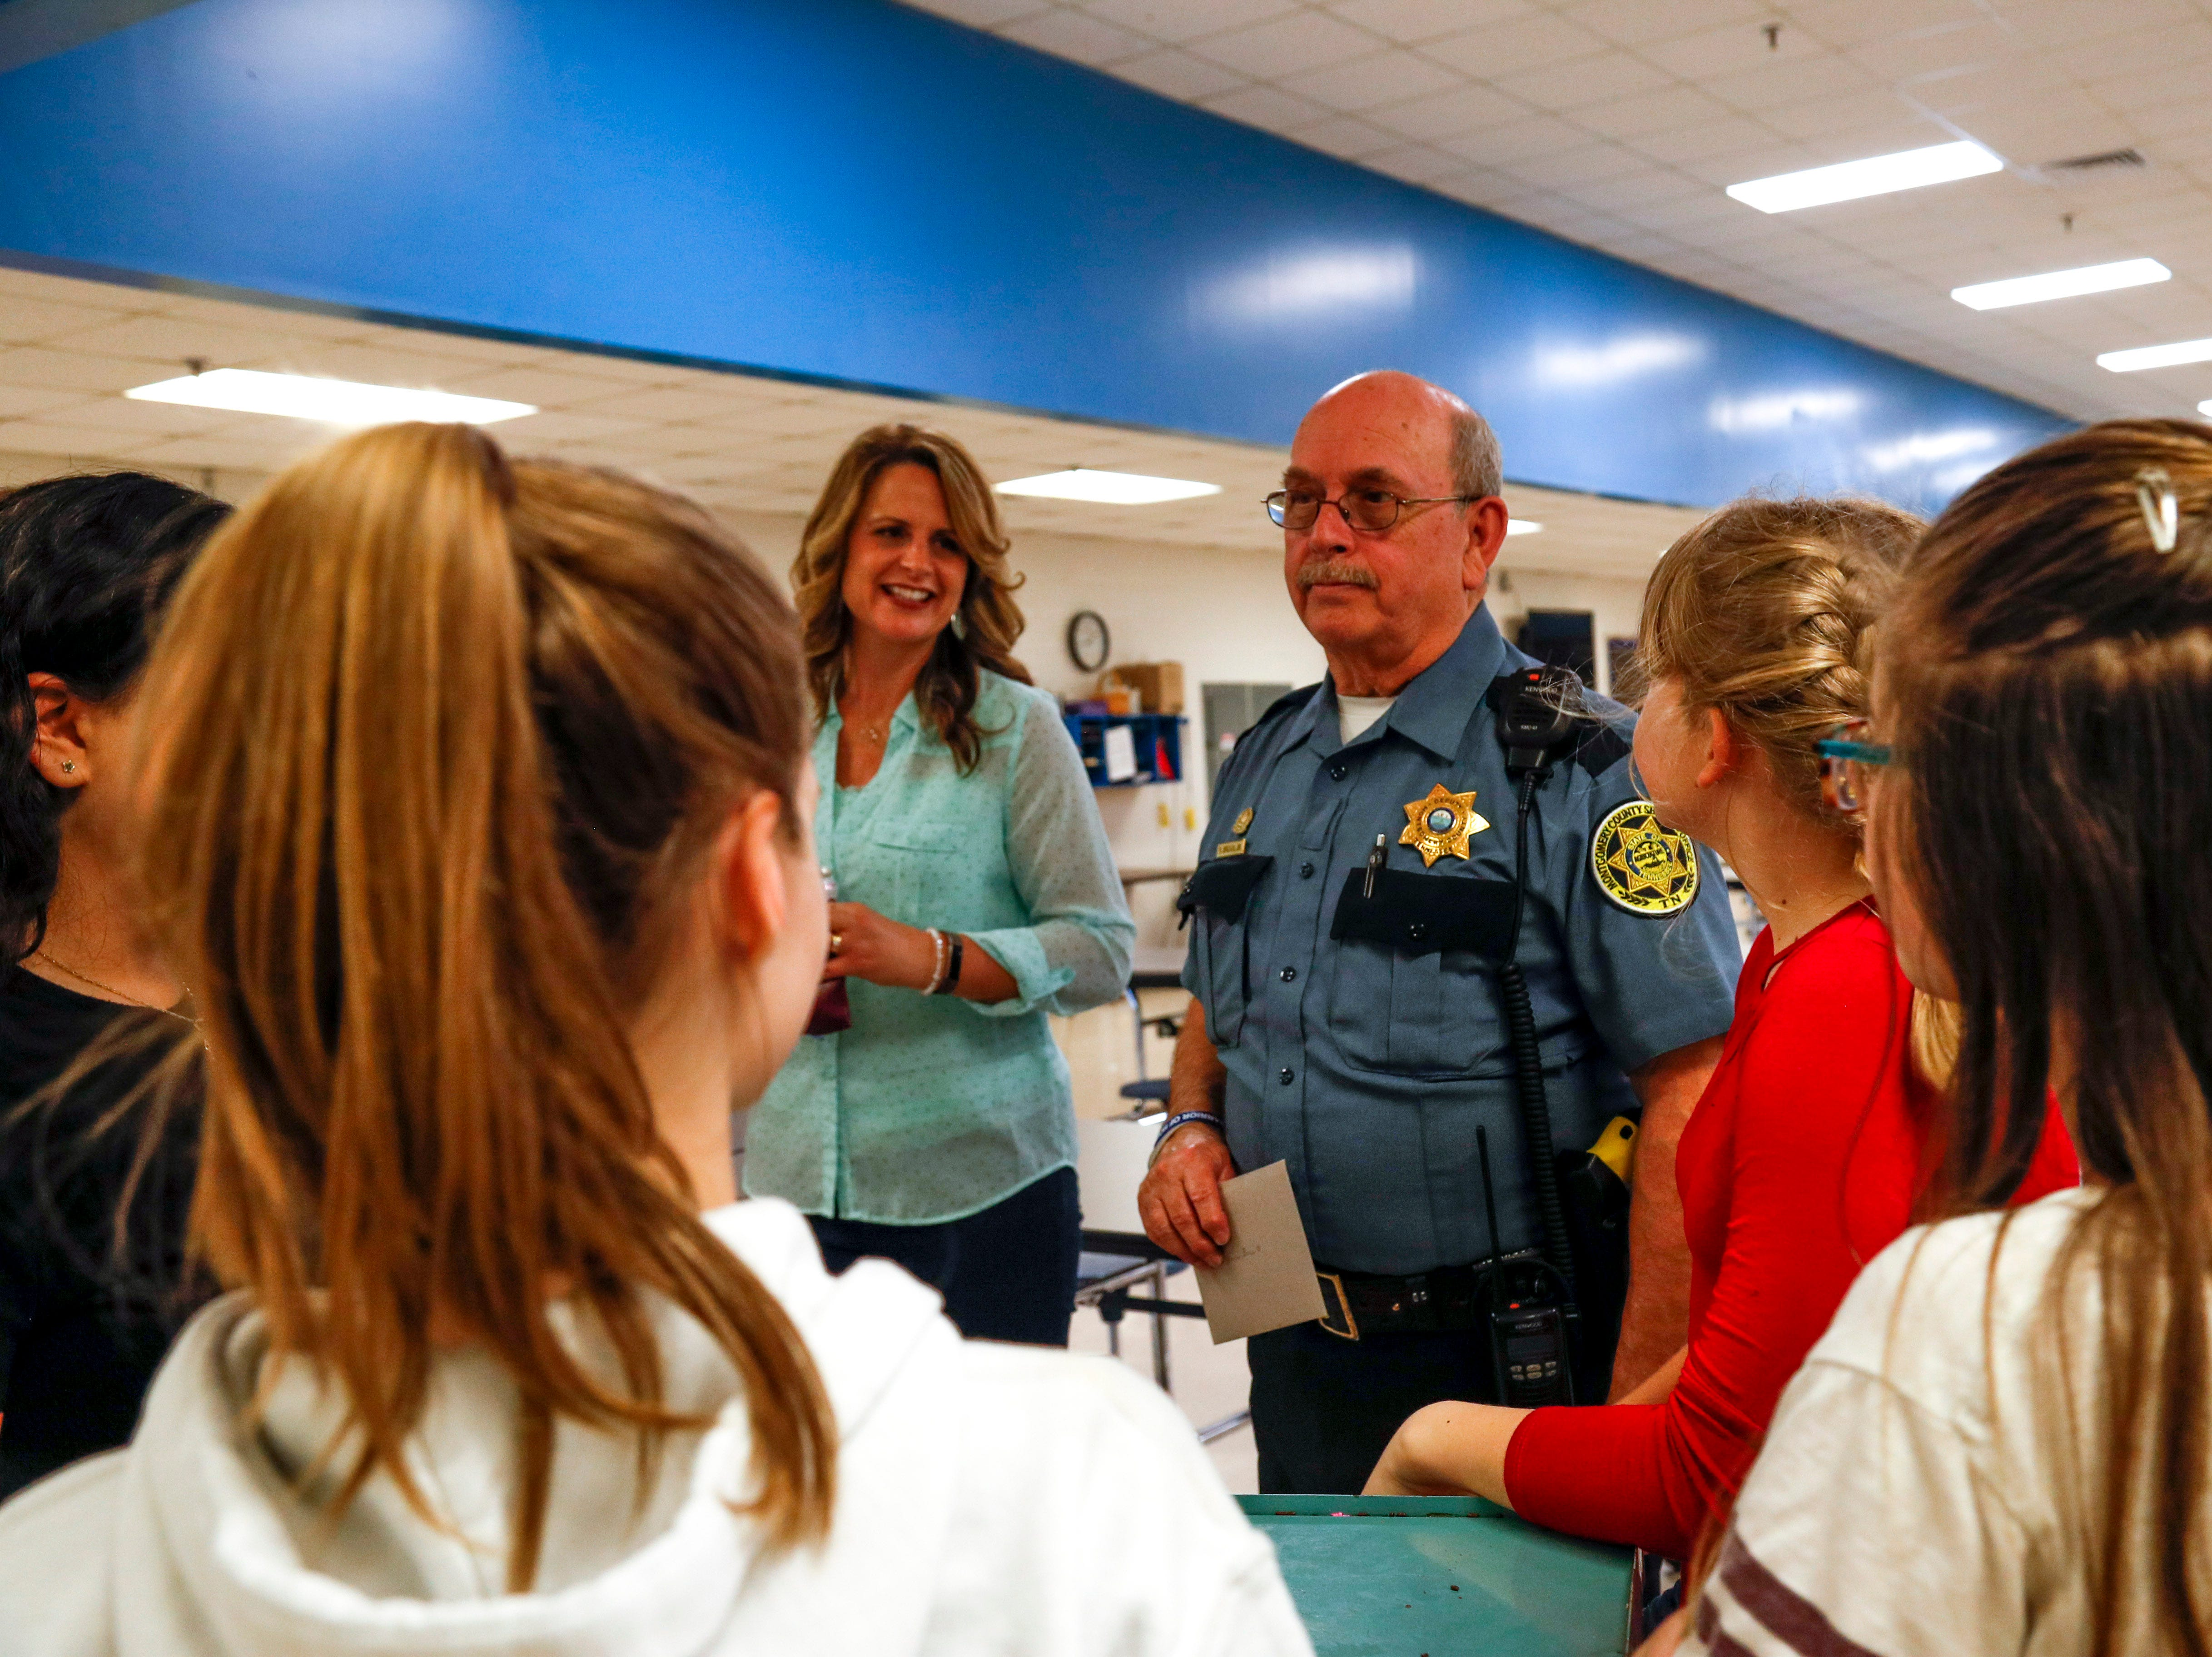 SRO Richard Brown speaks with 6th graders that had helped him for nearly six months at various bake sales at Richview Middle School in Clarksville, Tenn., on Friday, March 15, 2019.